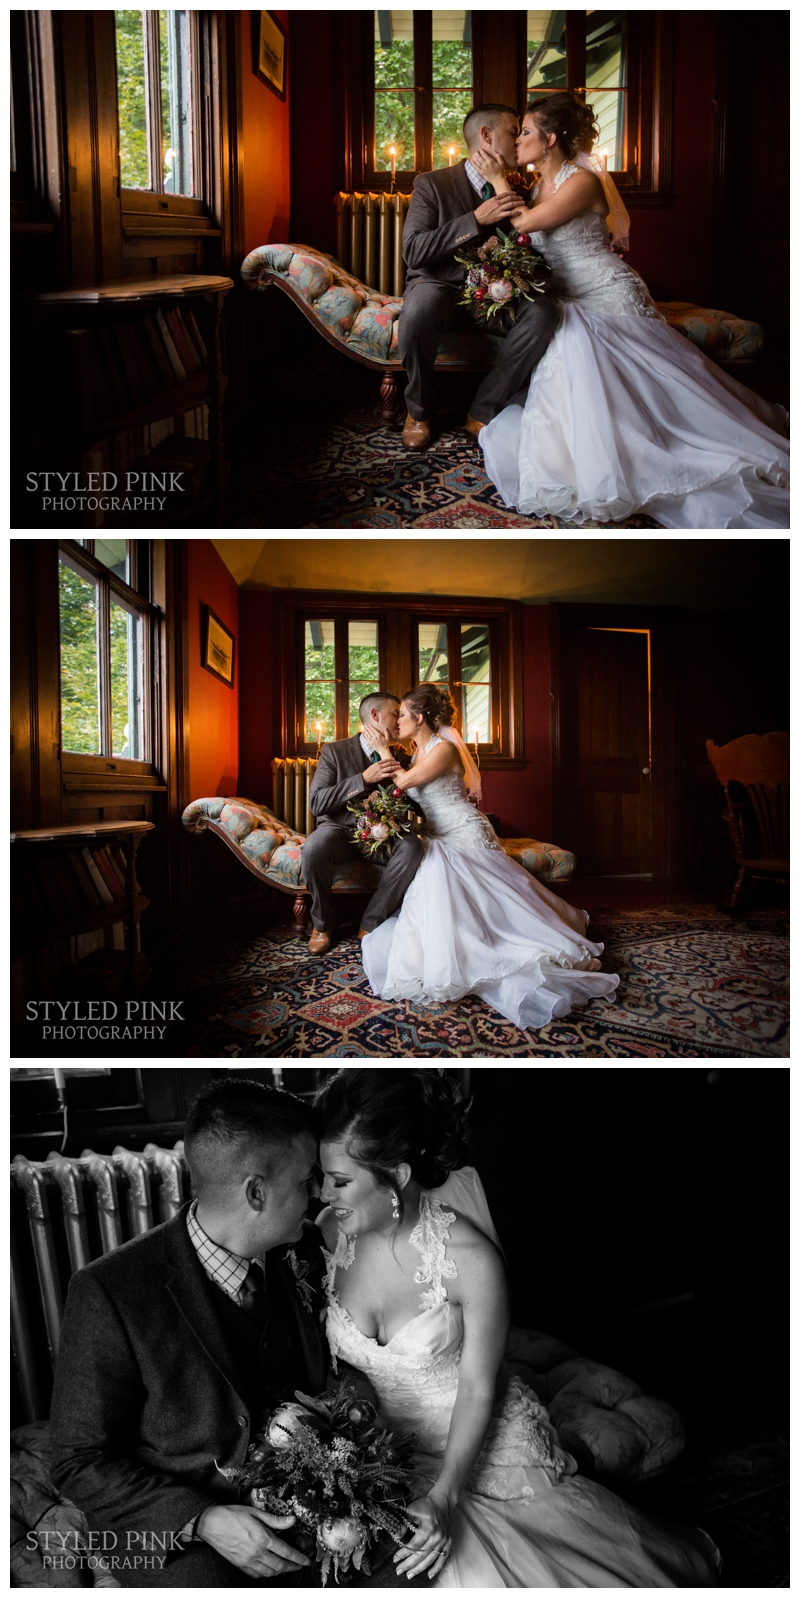 styled-pink-photography-knowlton-mansion-wedding-39